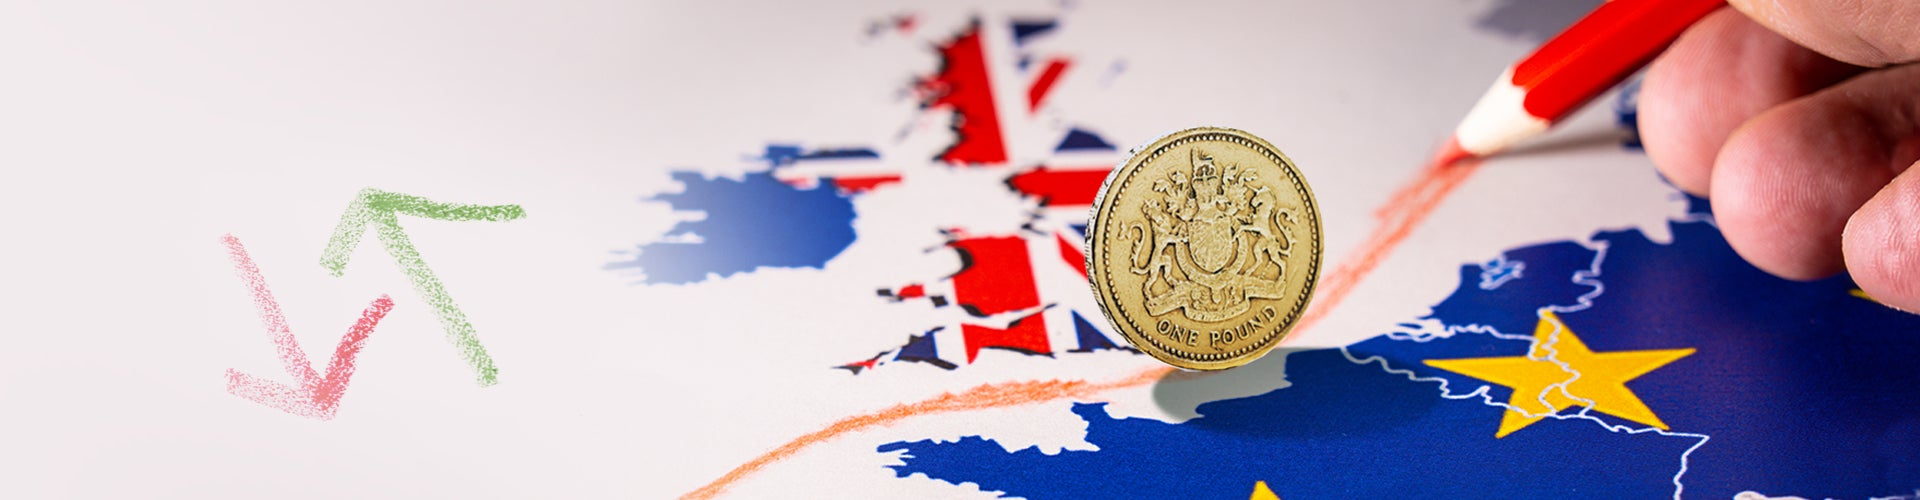 How Will The UK Leaving the EU In 2019 Affect the GBP? - FXCM UK